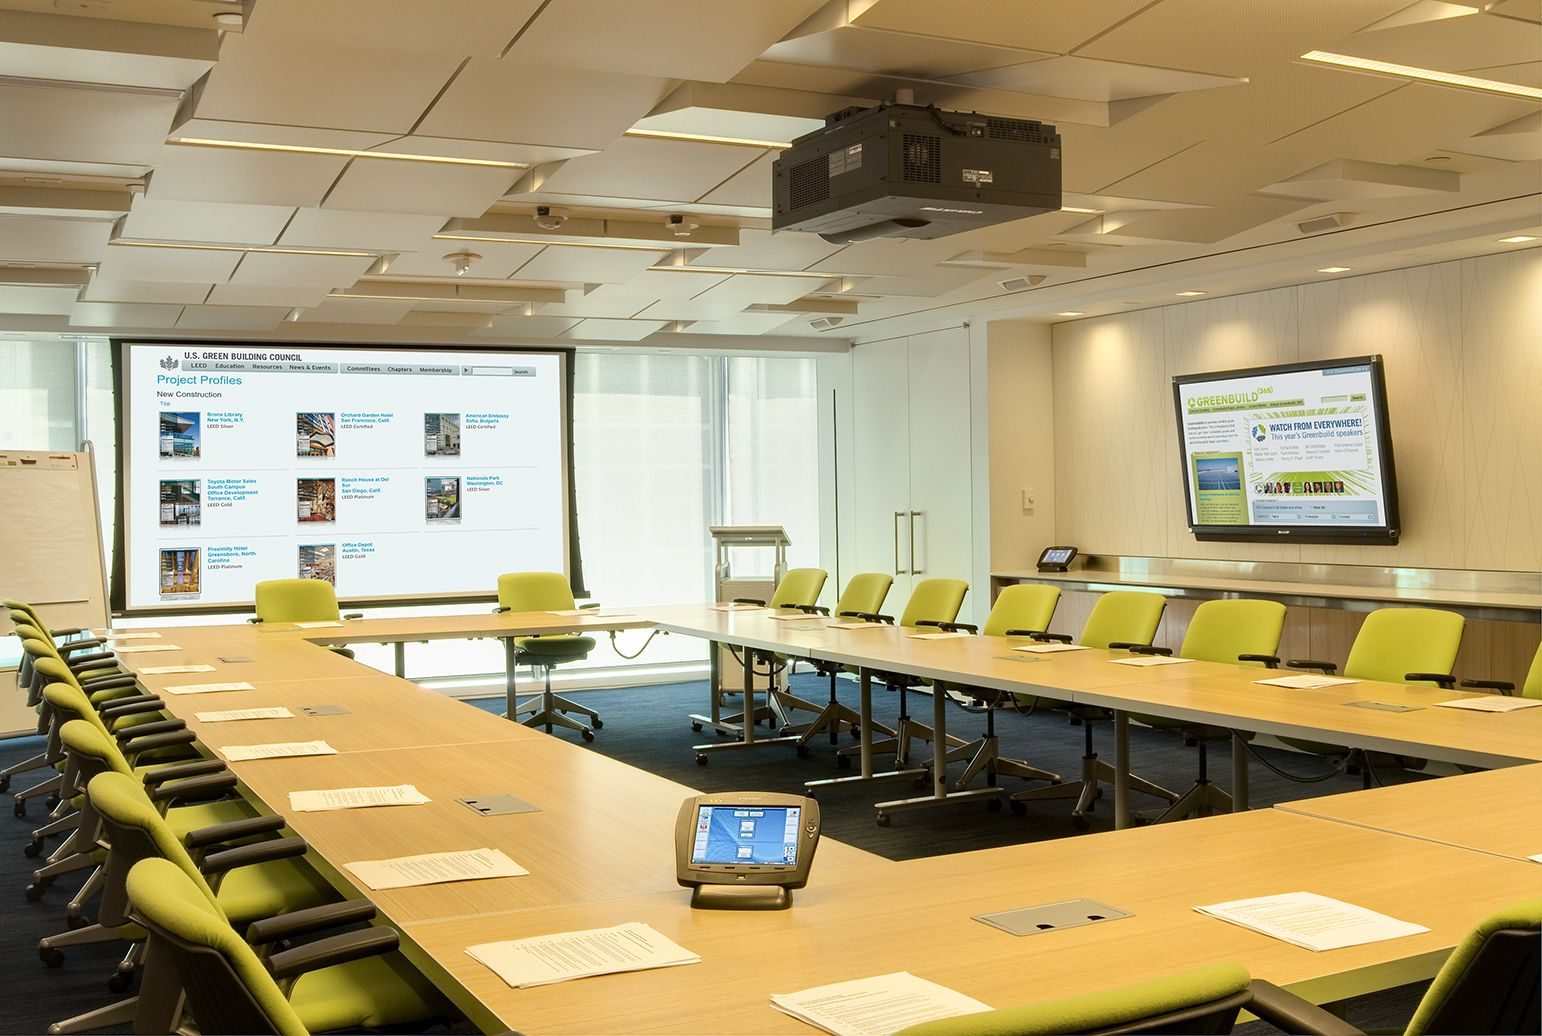 U s green building council conference room table open for Meeting room interior design ideas